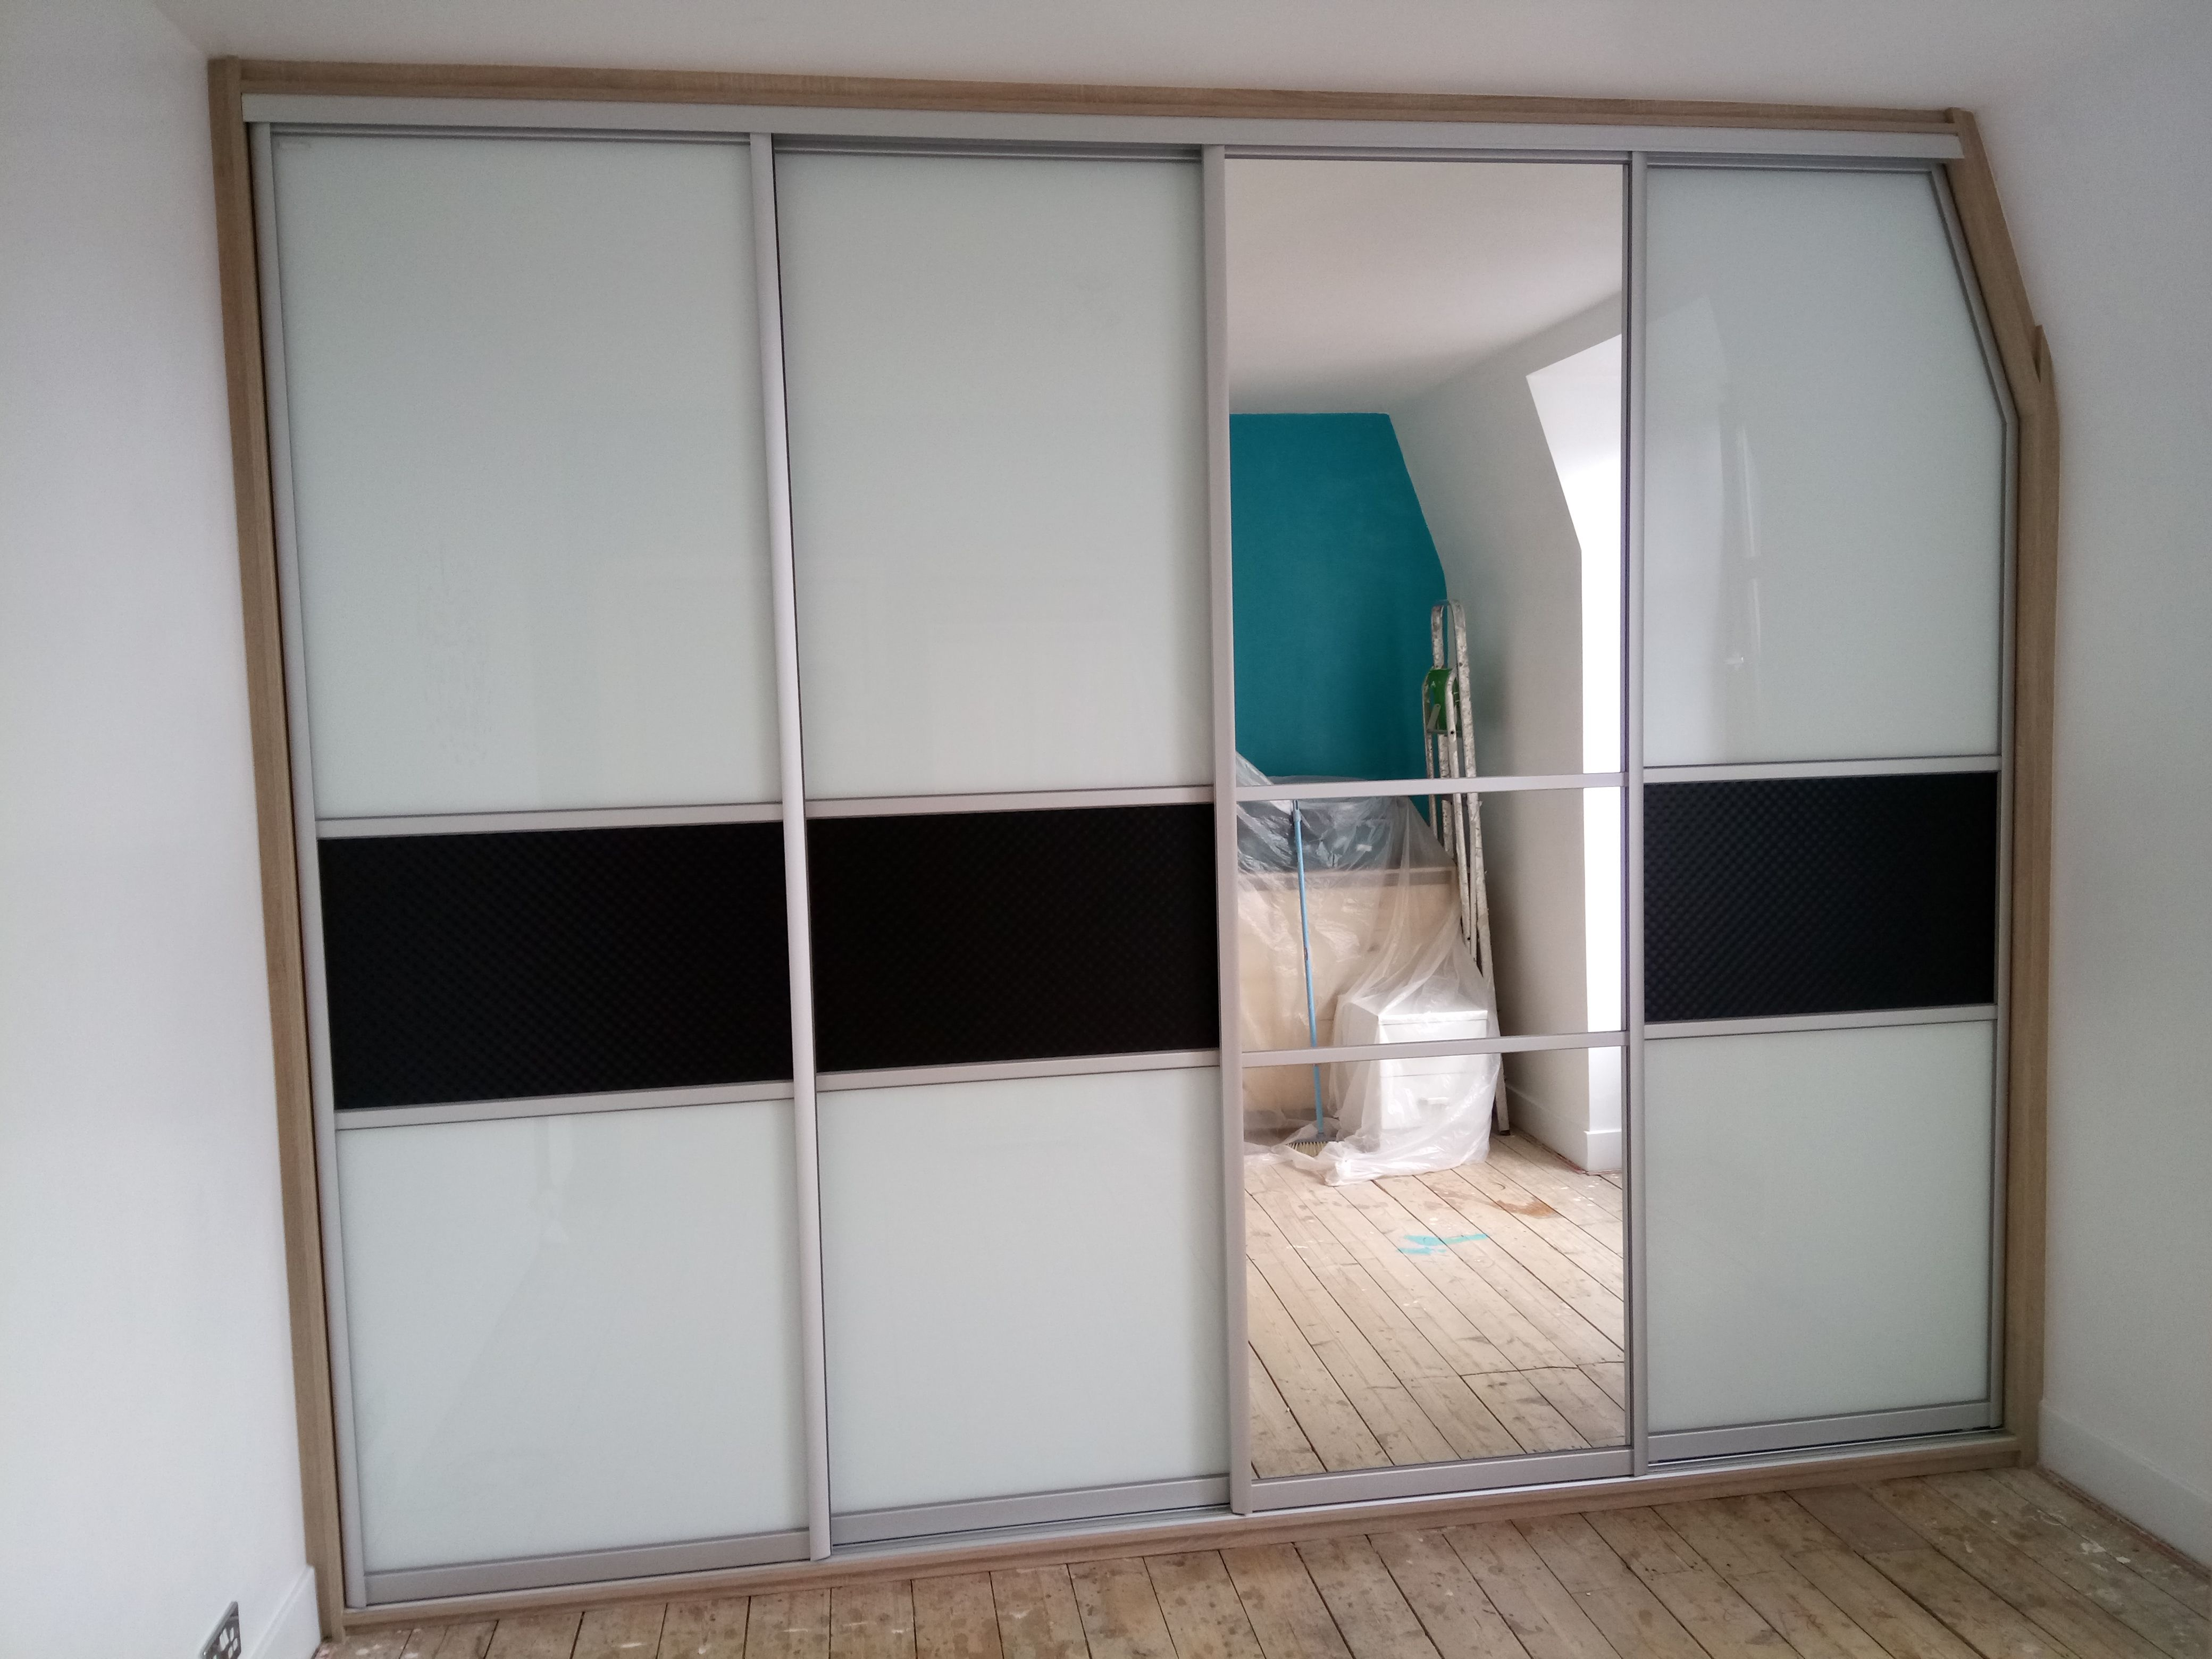 4 door wardrobe with black and white point glass and one